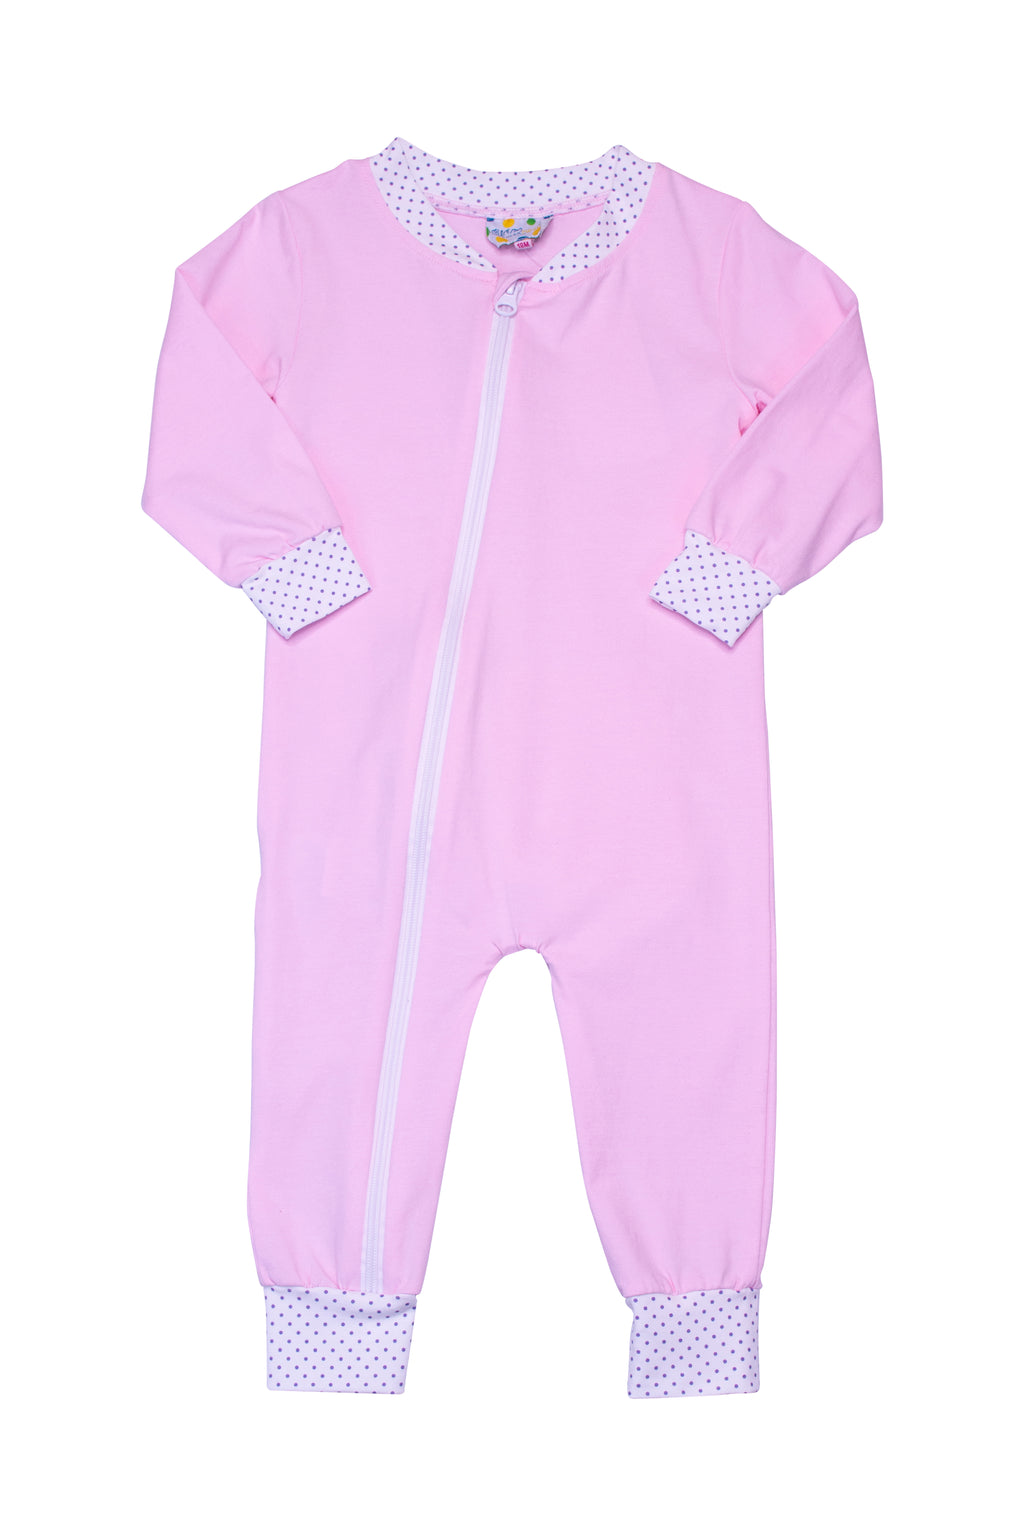 Girls Knit Pink/Lavender Dot Flap PJ